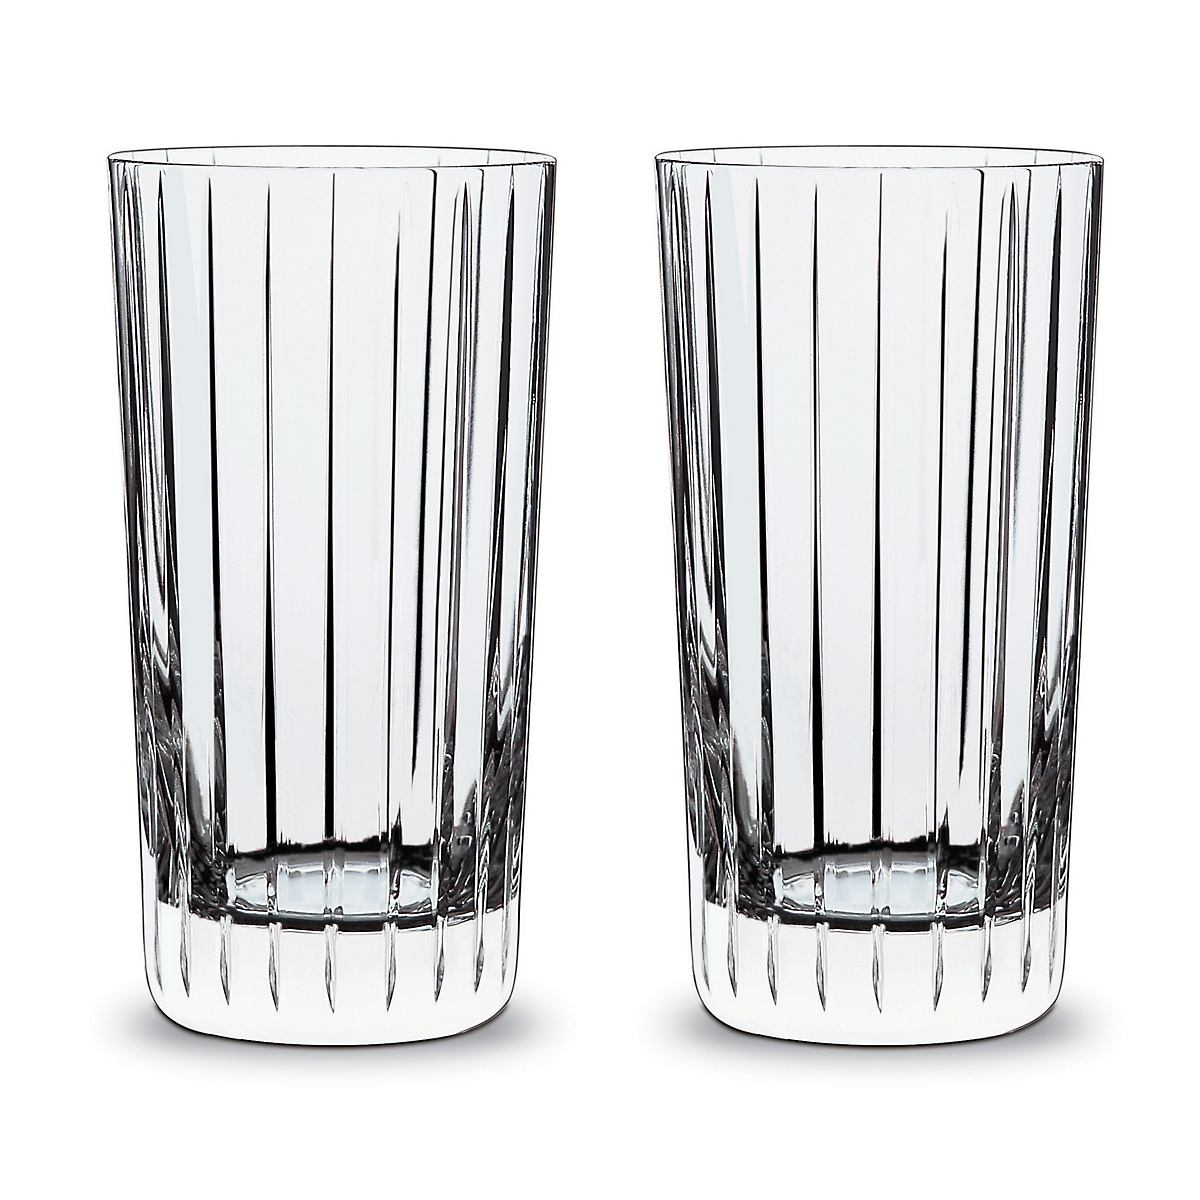 Baccarat Harmonie Highball Glasses